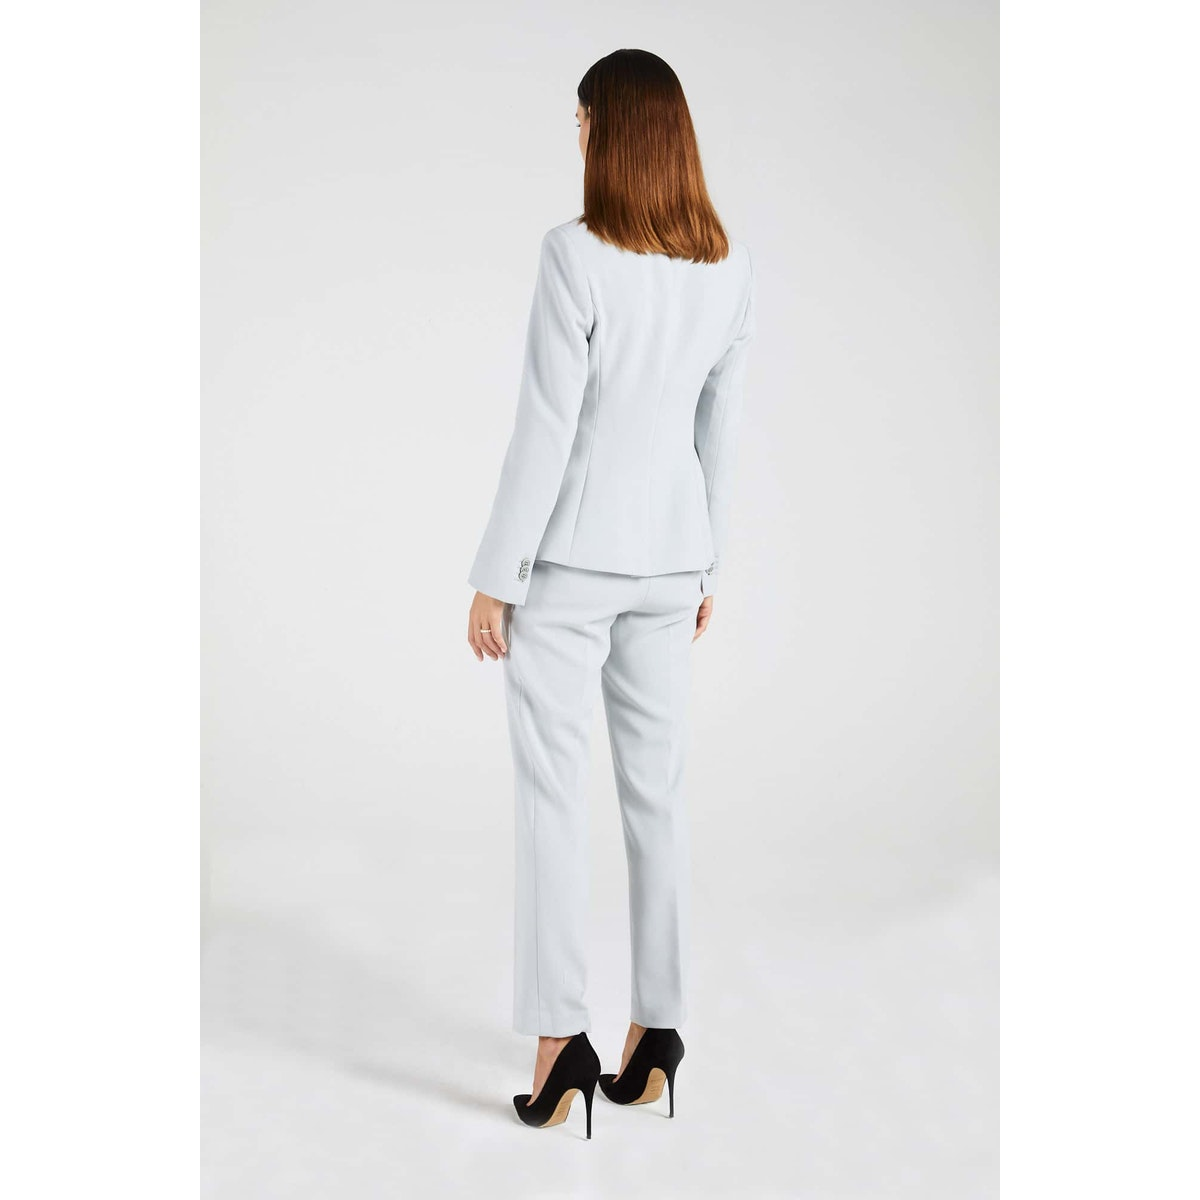 InStitchu Collection The Cowan Powder Grey Jacket